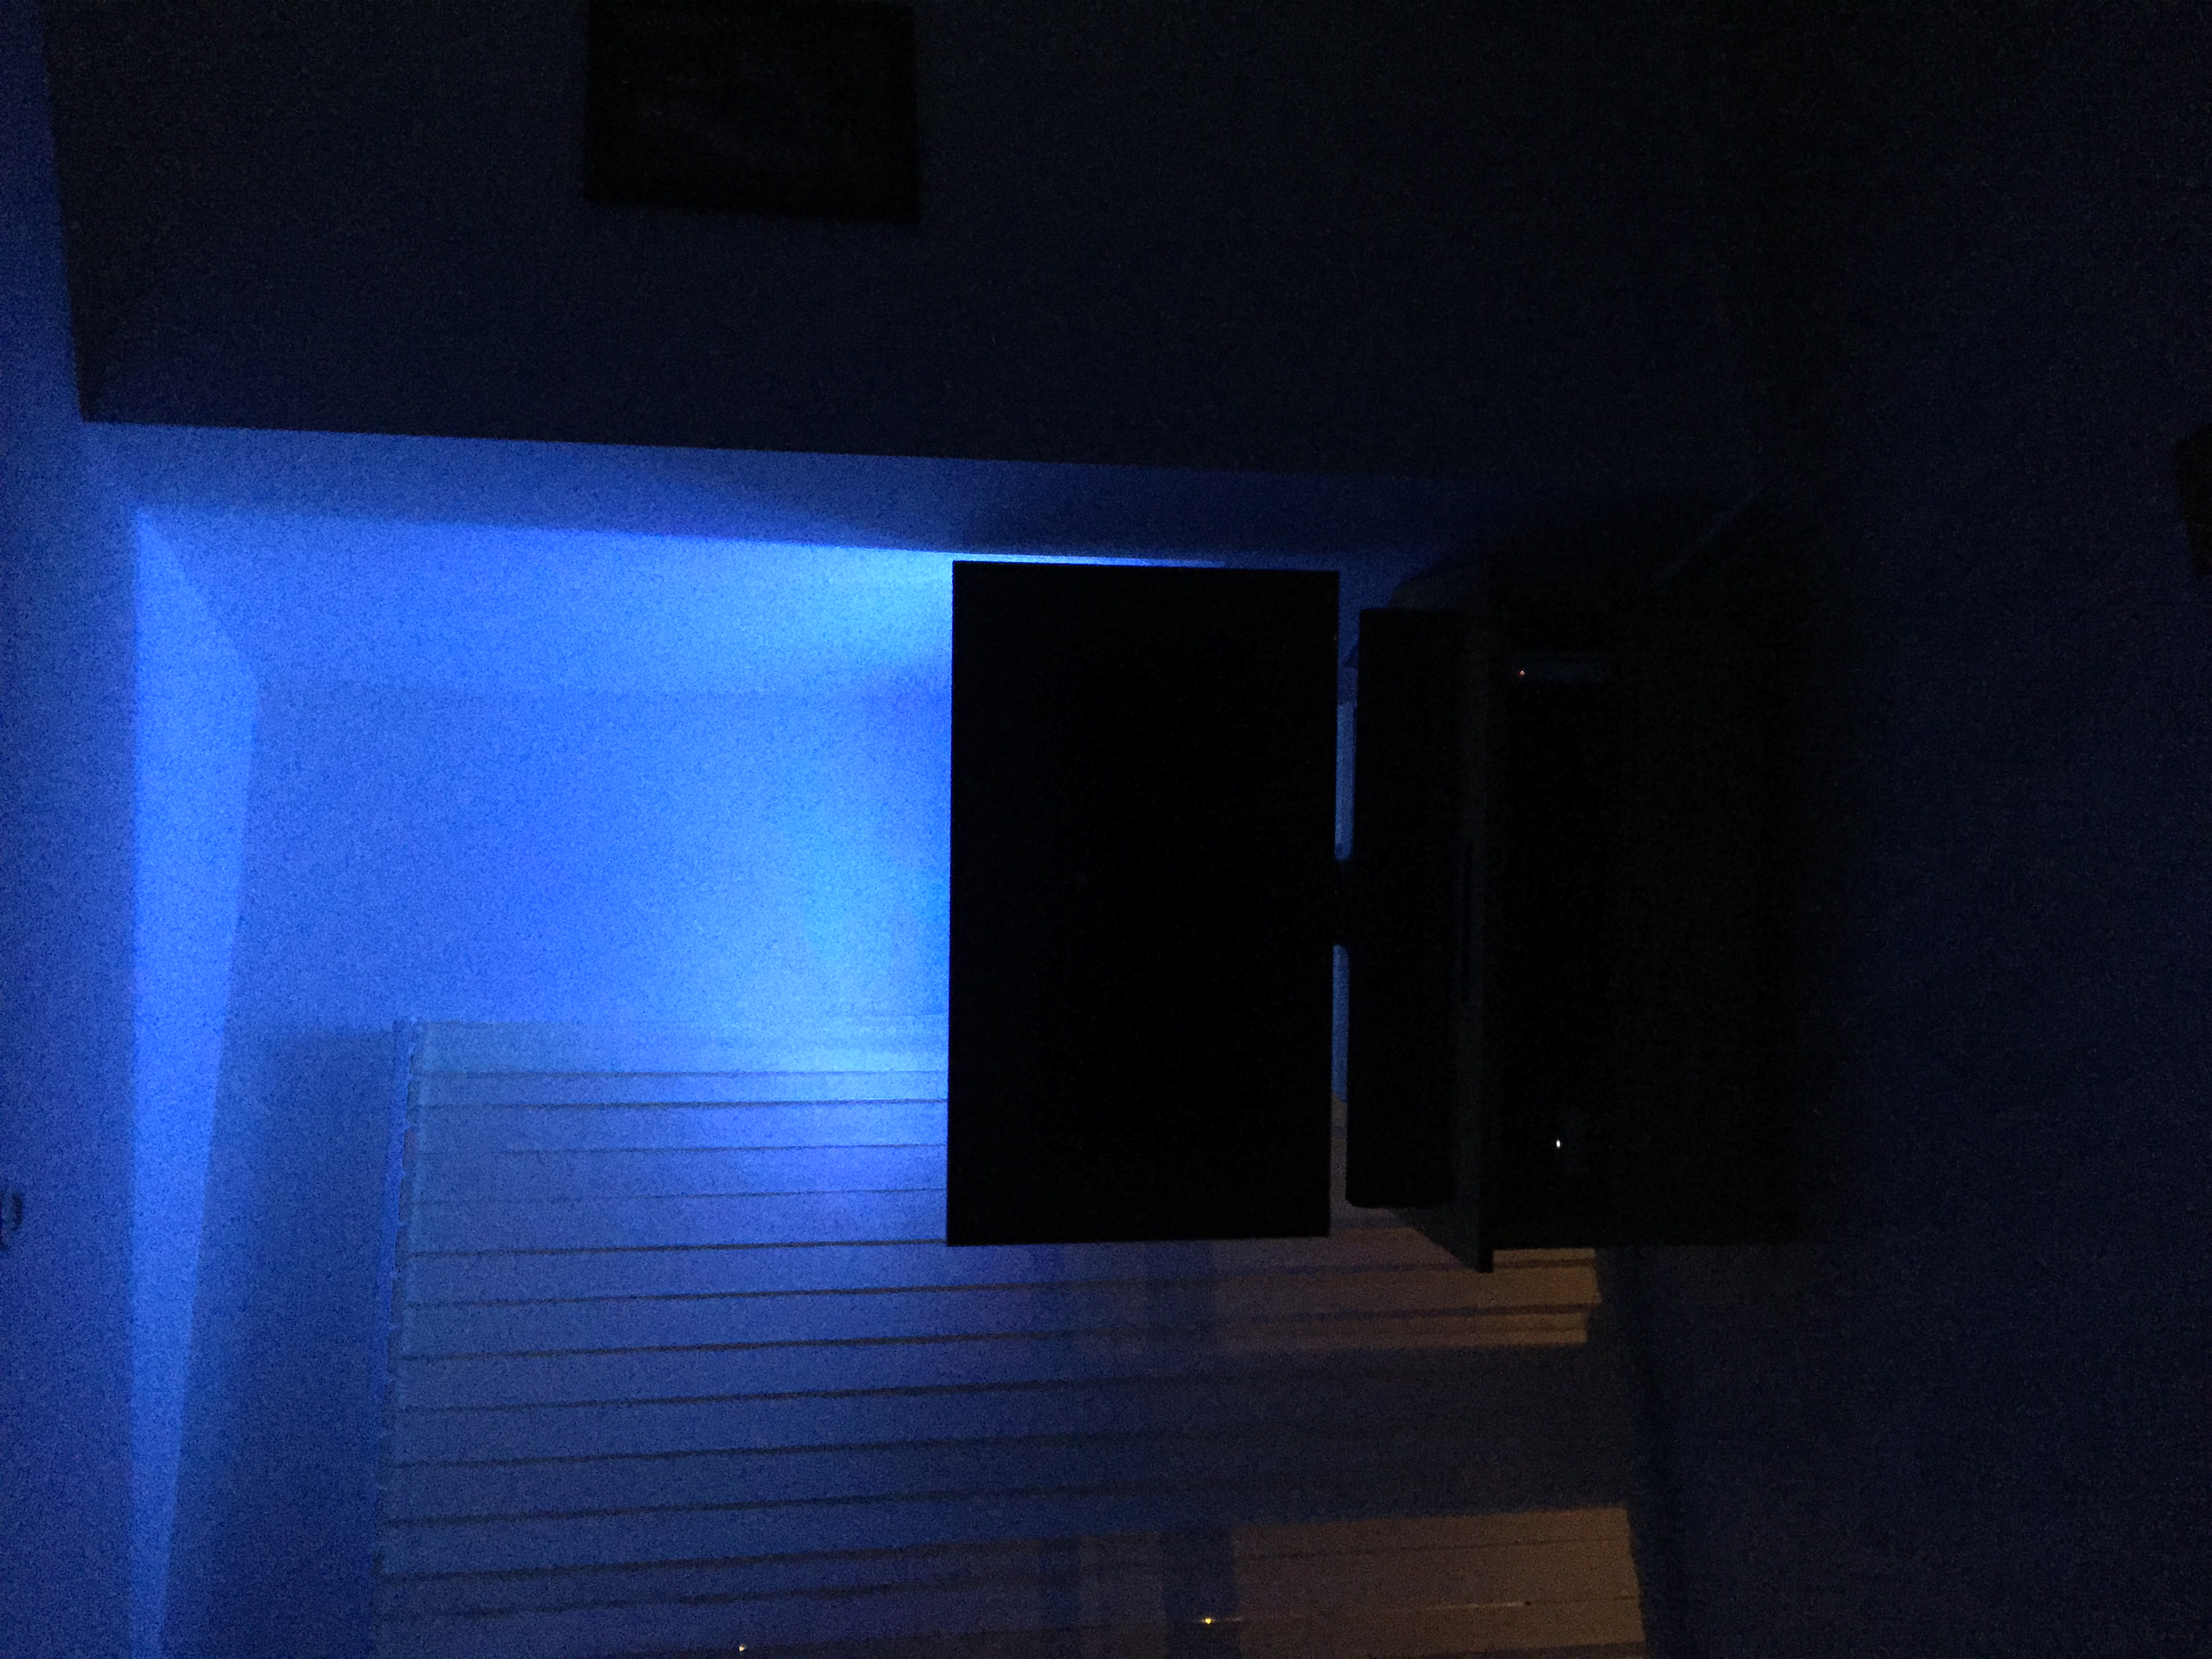 Blue LED behind TV